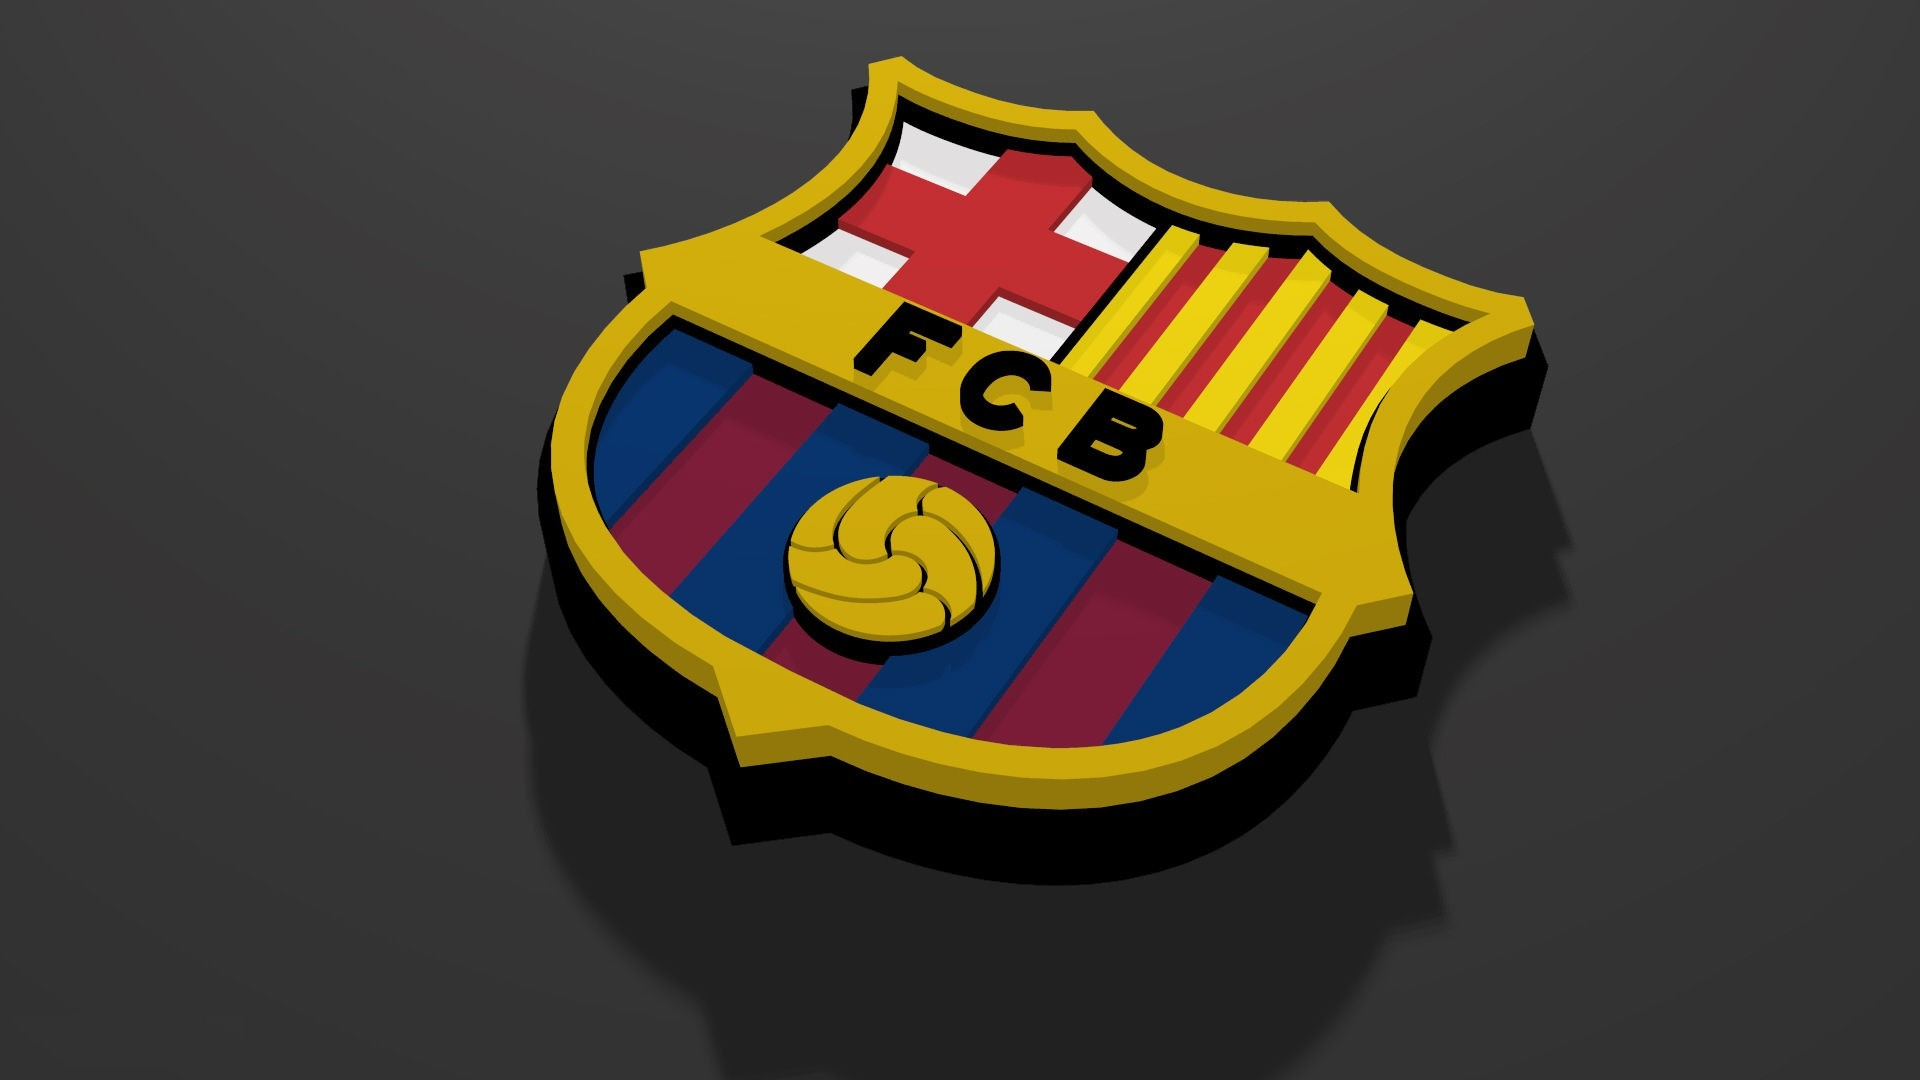 Logo Barcelona Wallpaper Terbaru 2018 ·â'  WallpaperTag